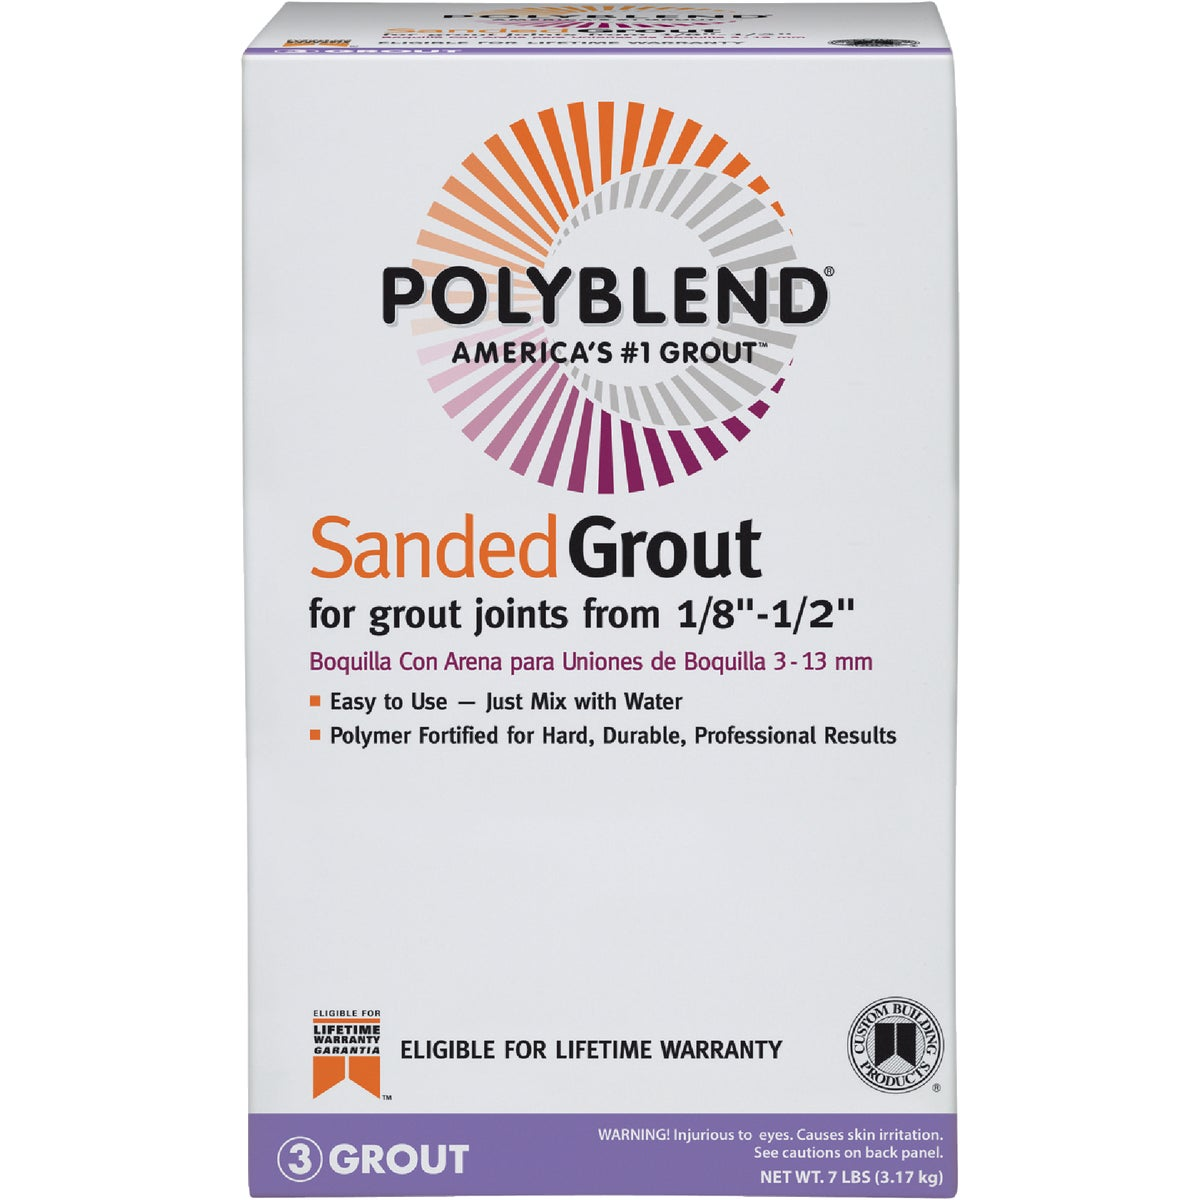 7LB DEL GRY SANDD GROUT - PBG1657-4 by Custom Building Prod